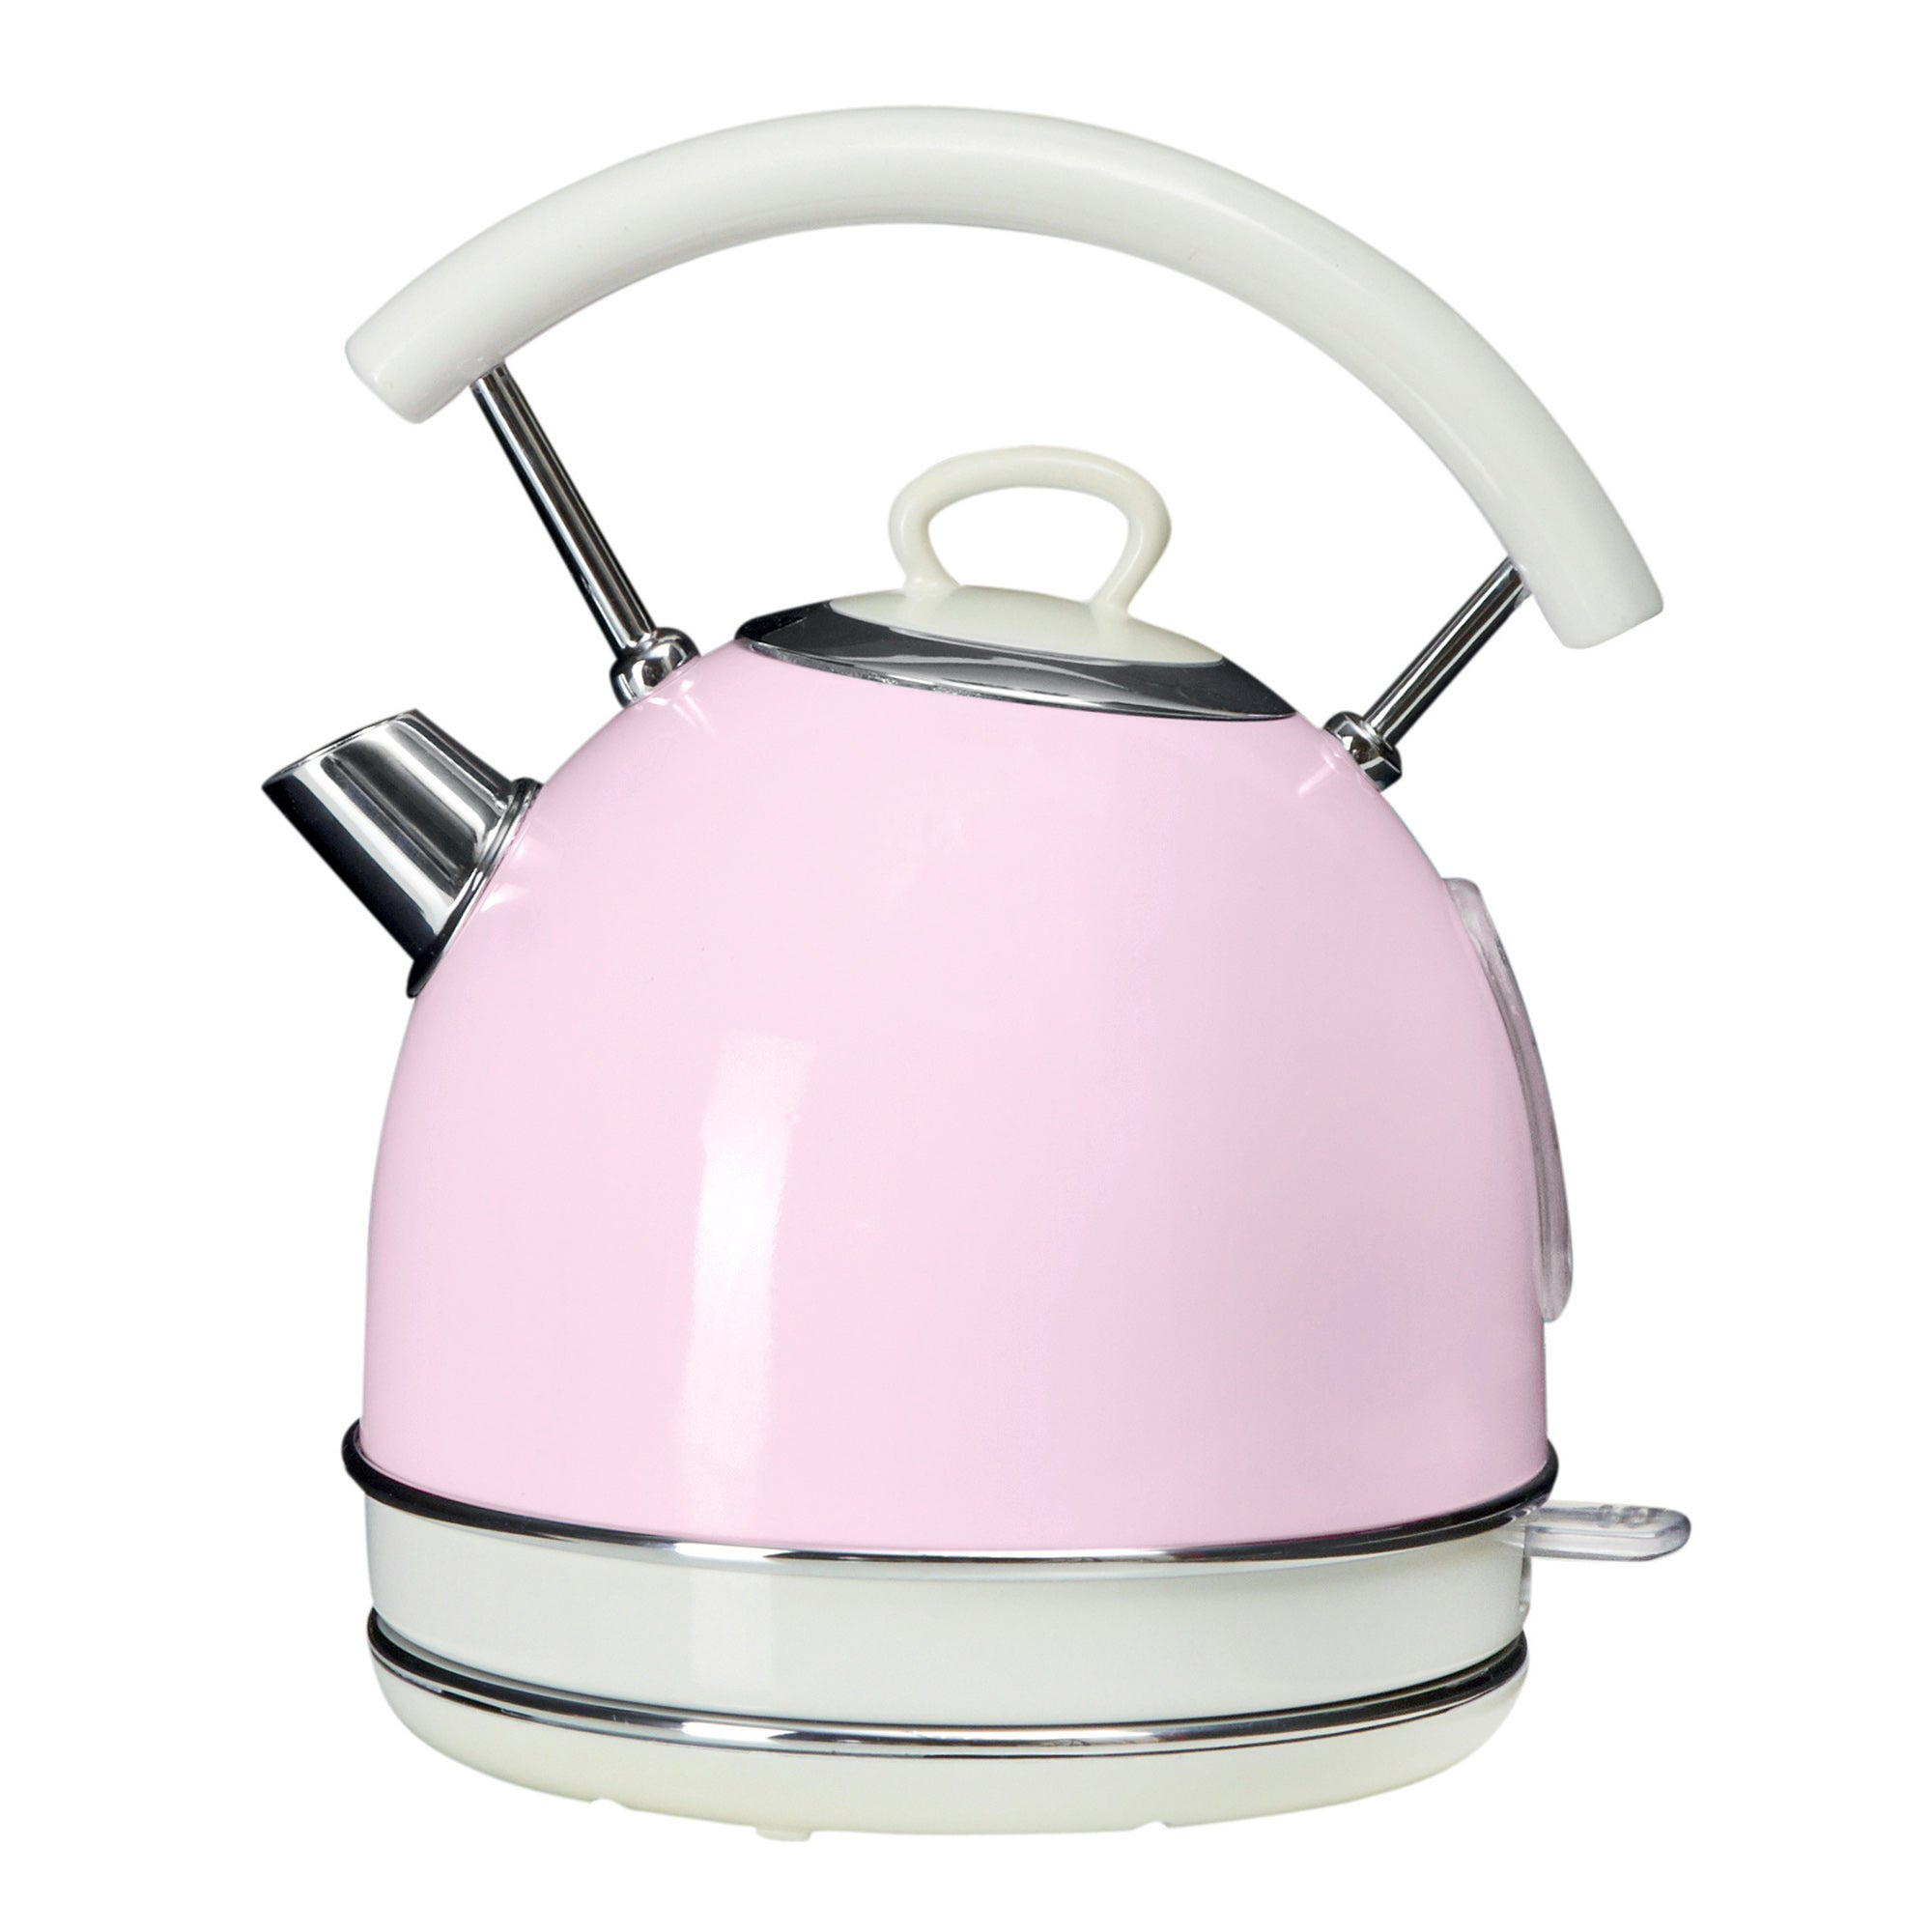 Buy Cheap Pink Kettle Compare Electric Kettles Prices